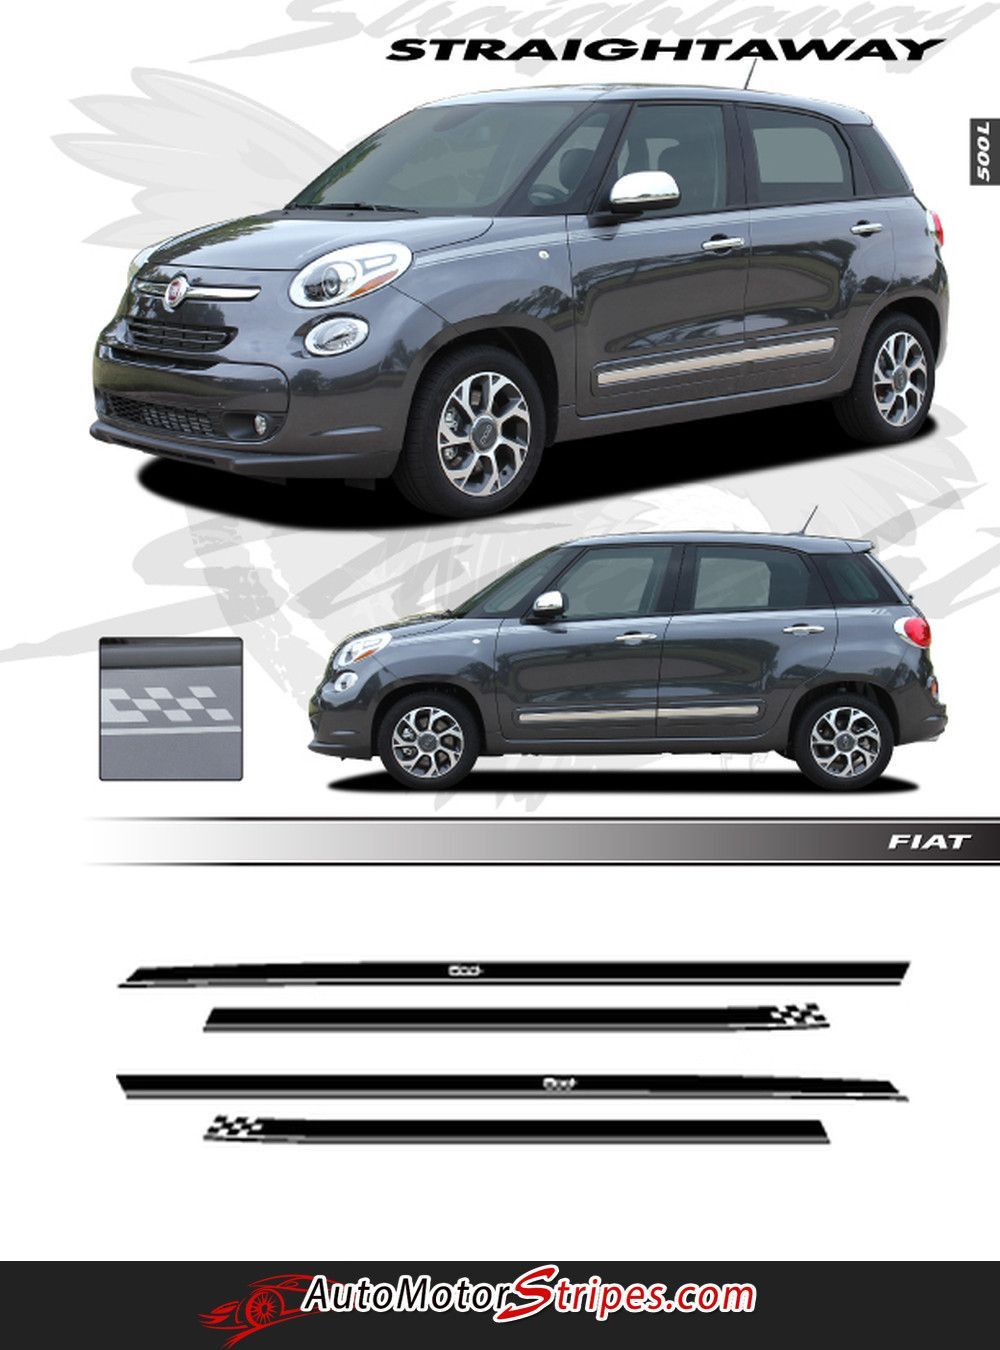 2014 2016 Fiat 500l Straightaway Upper Body Accent 4 Door Stripes